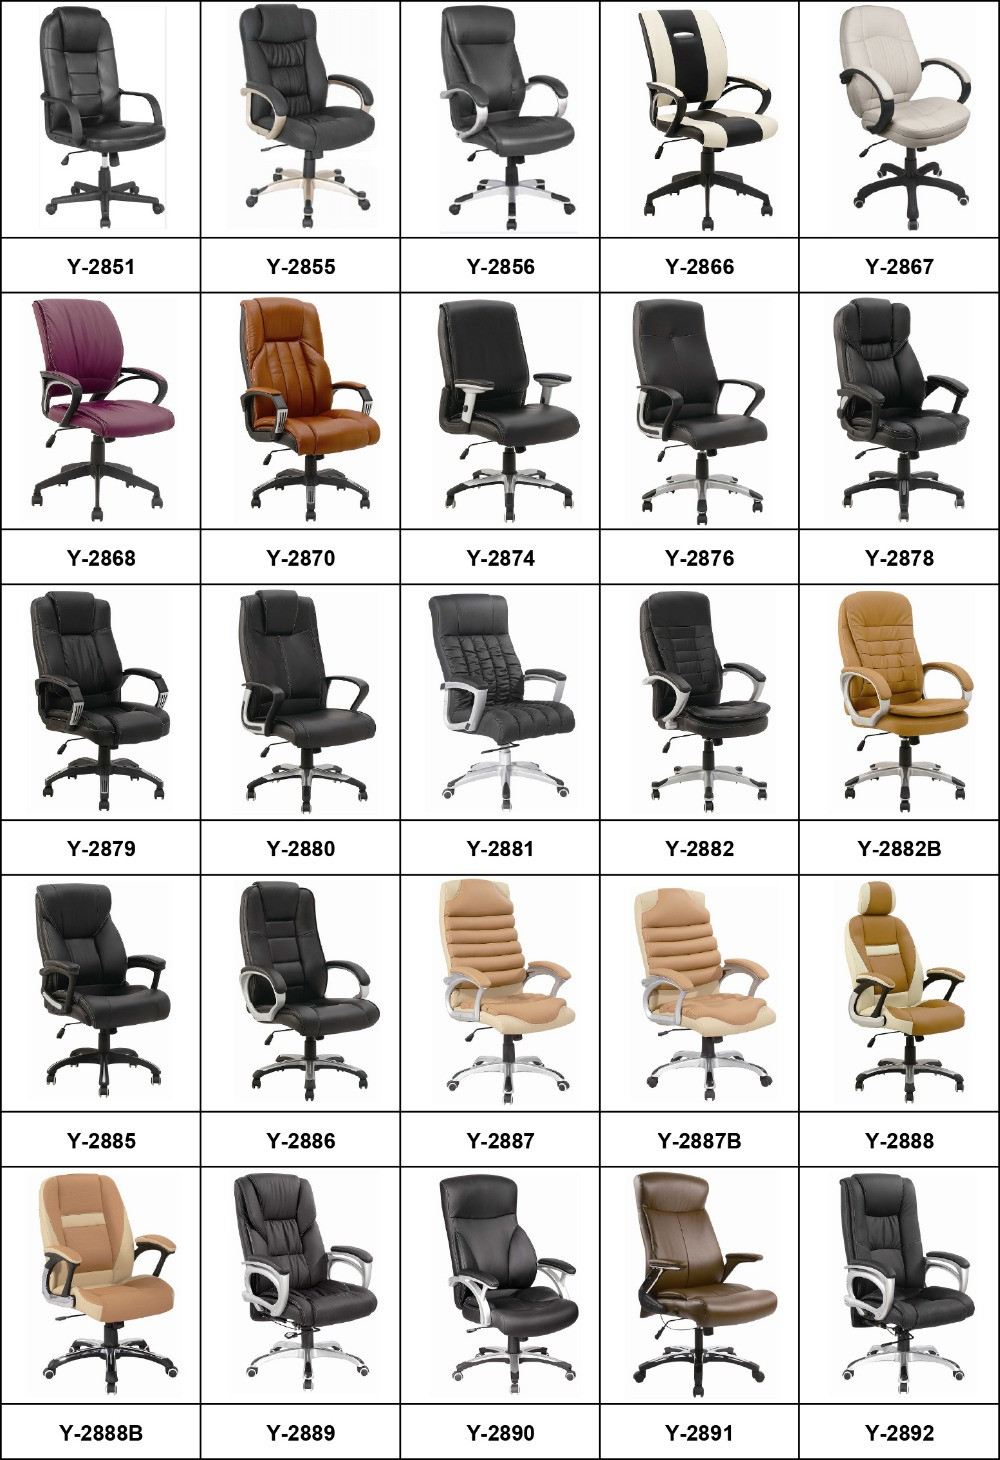 Ergonomic Chair Middle Back Executive PU Office Chair Y-2887B